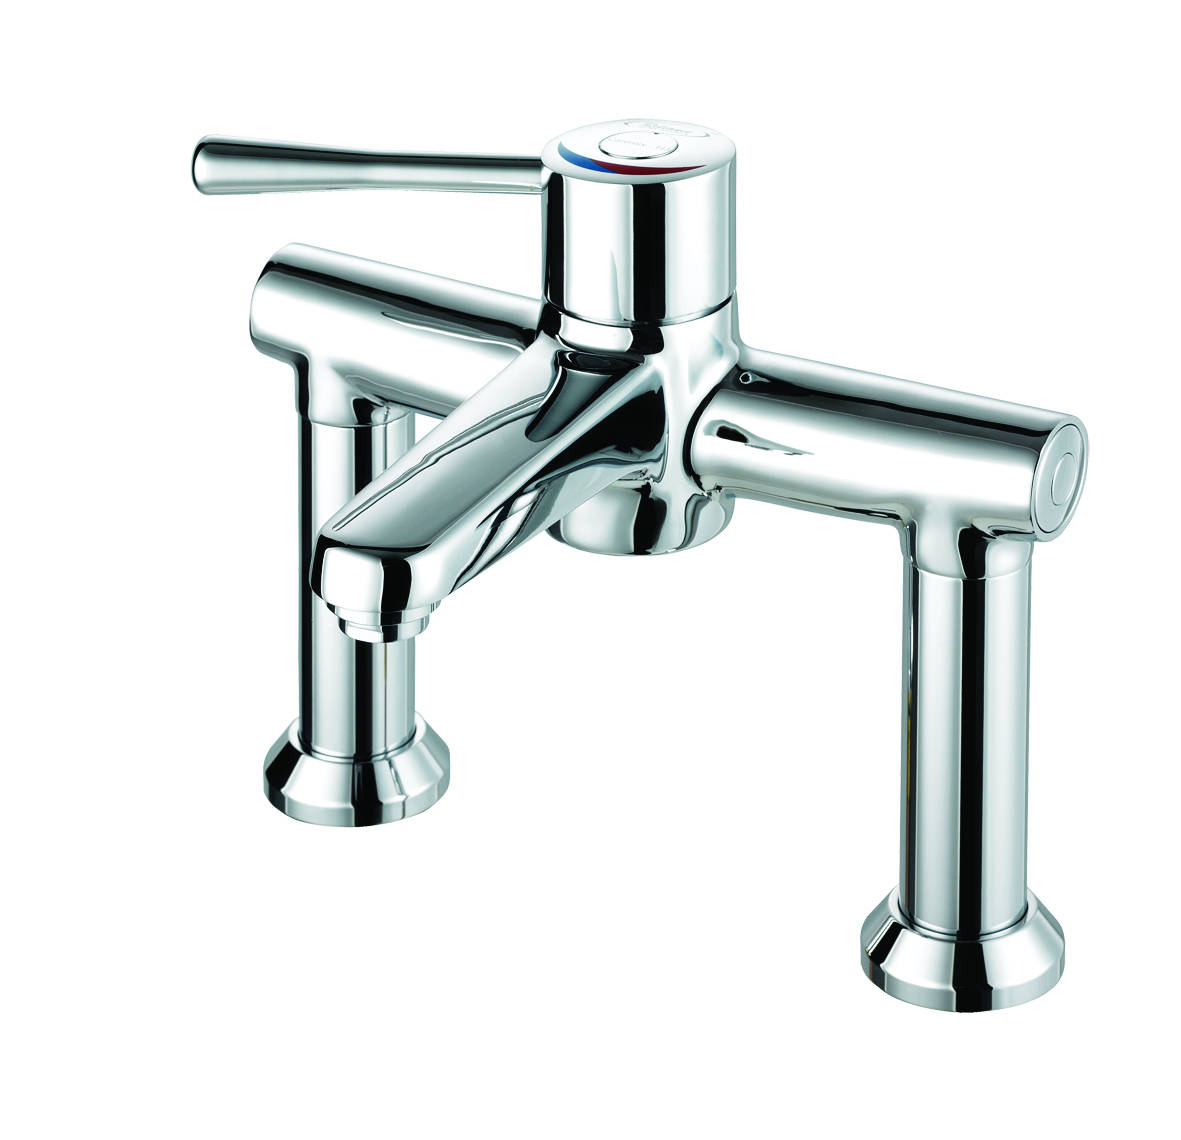 Deck Mounted Chrome Plated Brass Thermostatic Mixing Valve: RWC Caremix H3 TMV3 & WRAS Thermostatic Mixing Taps (Deck